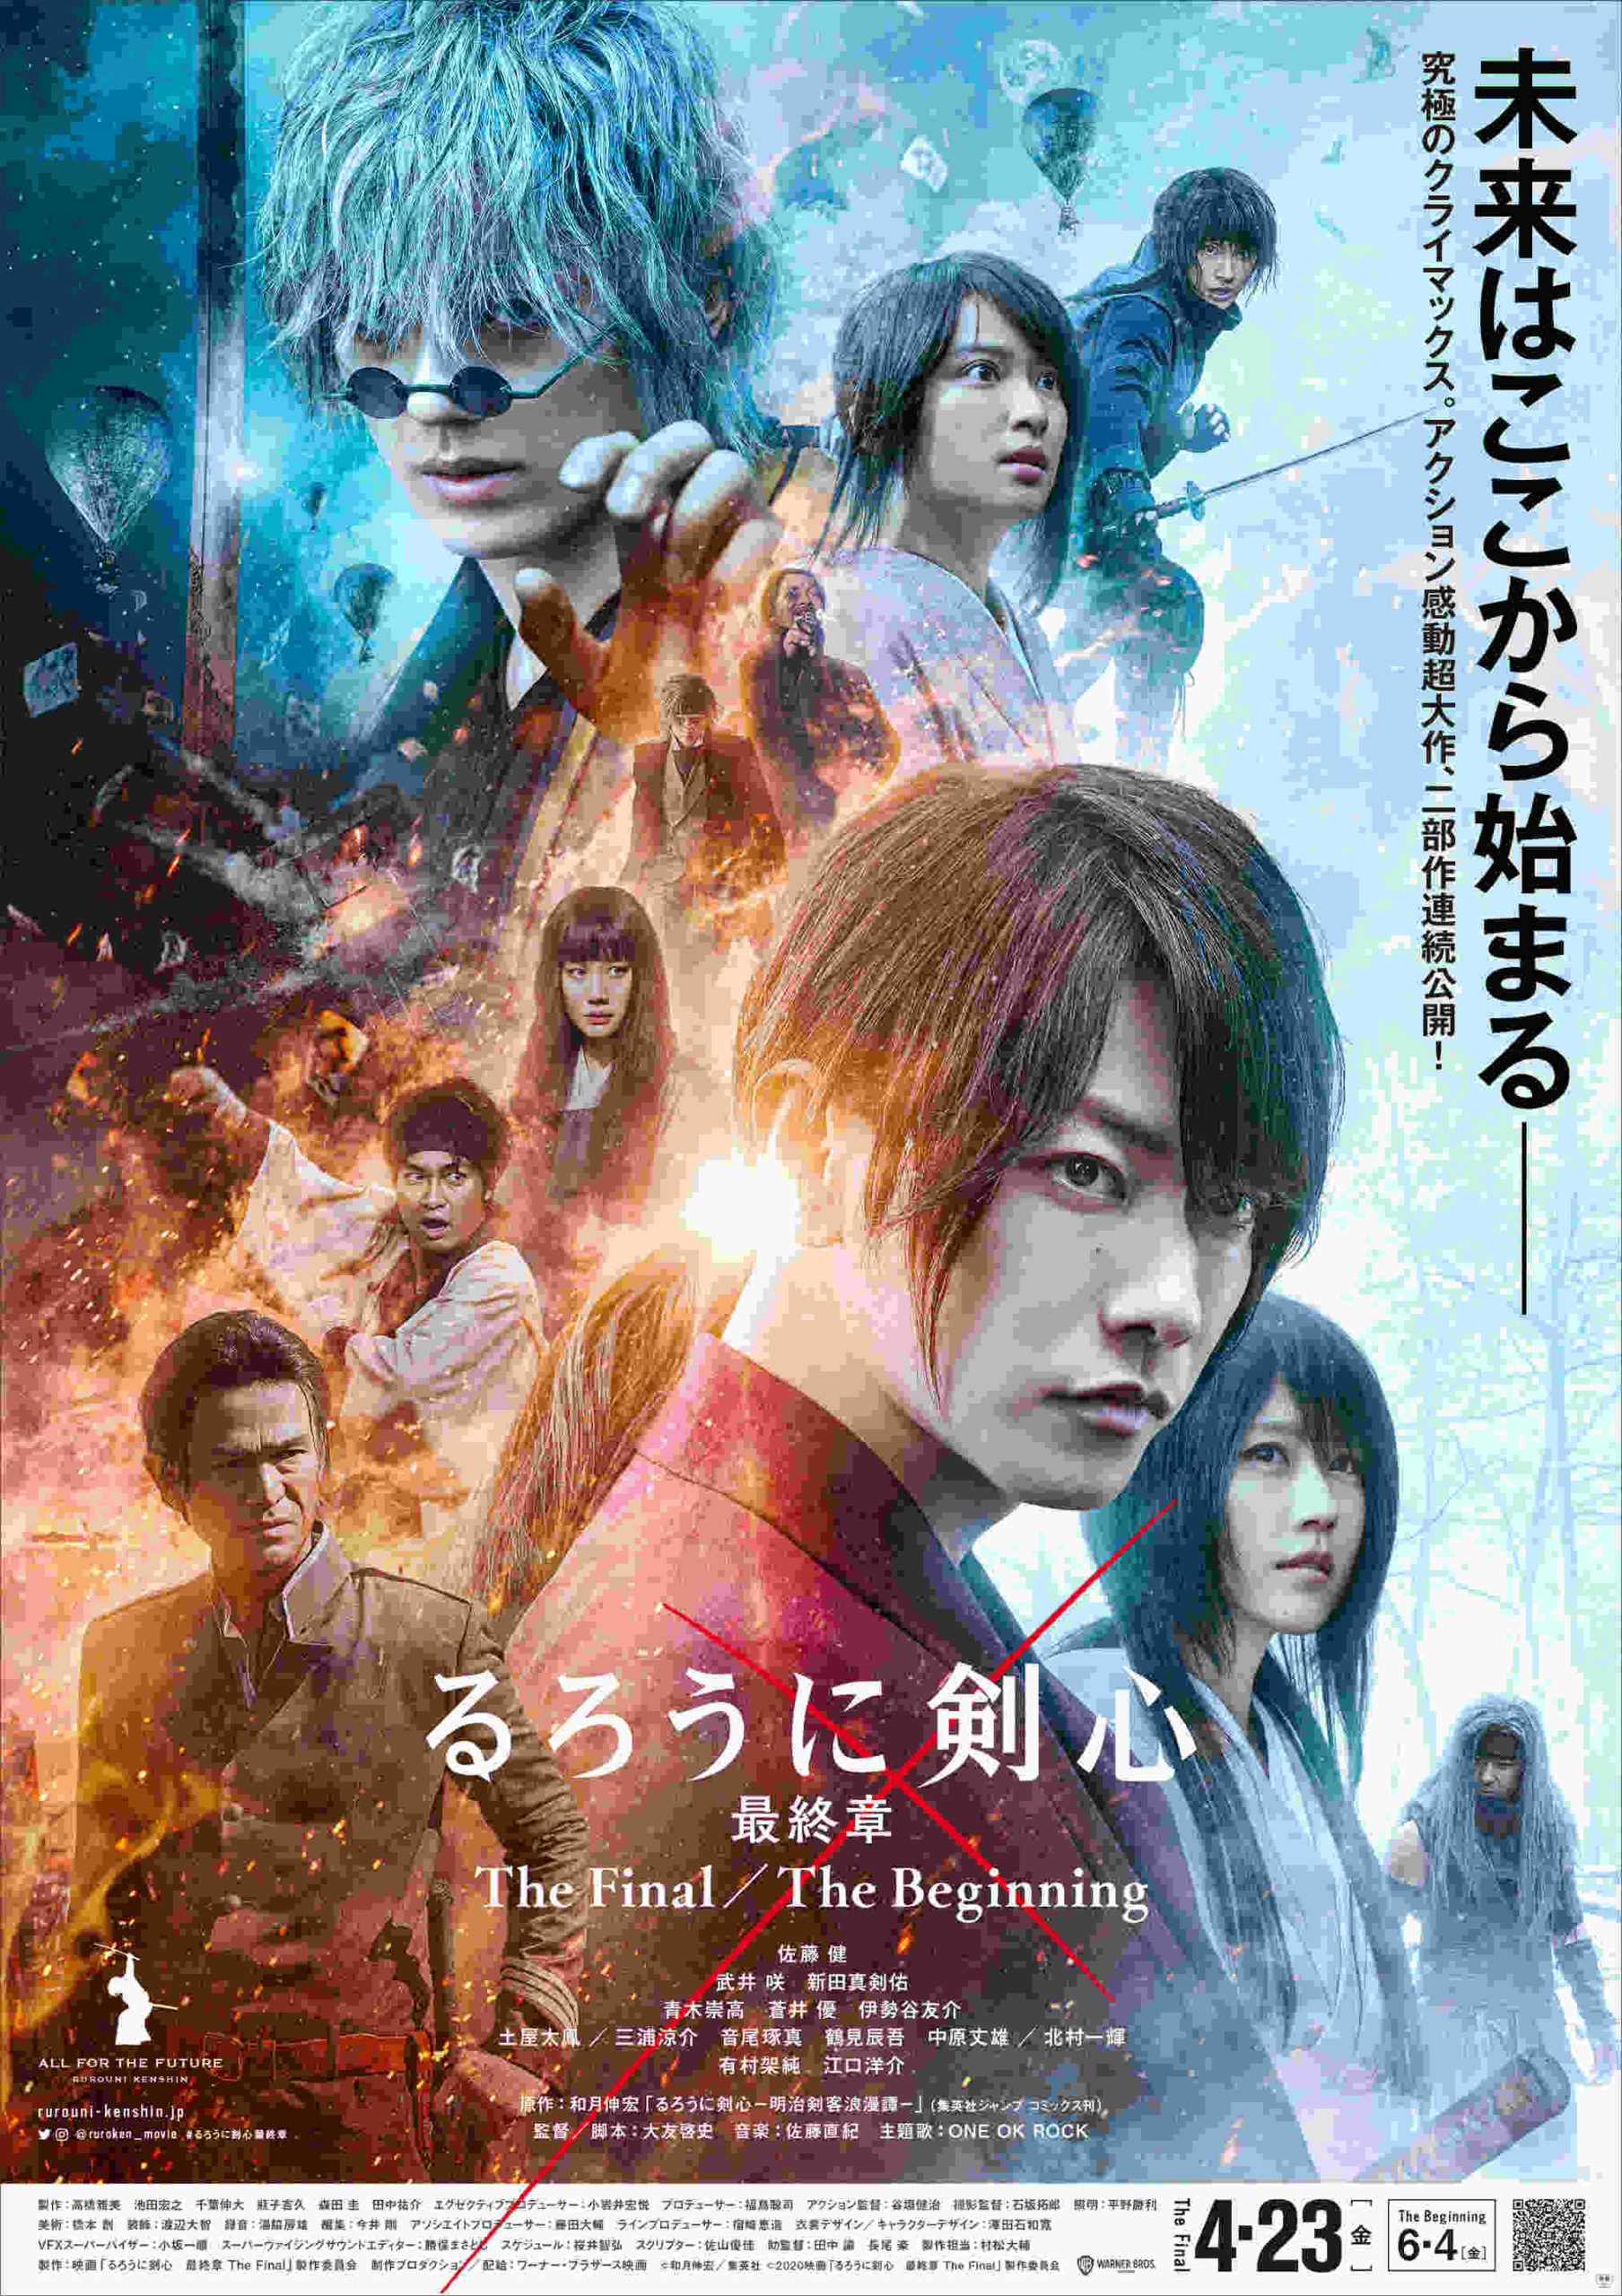 Rurouni Kenshin Movies 2021 1 - new movie poster